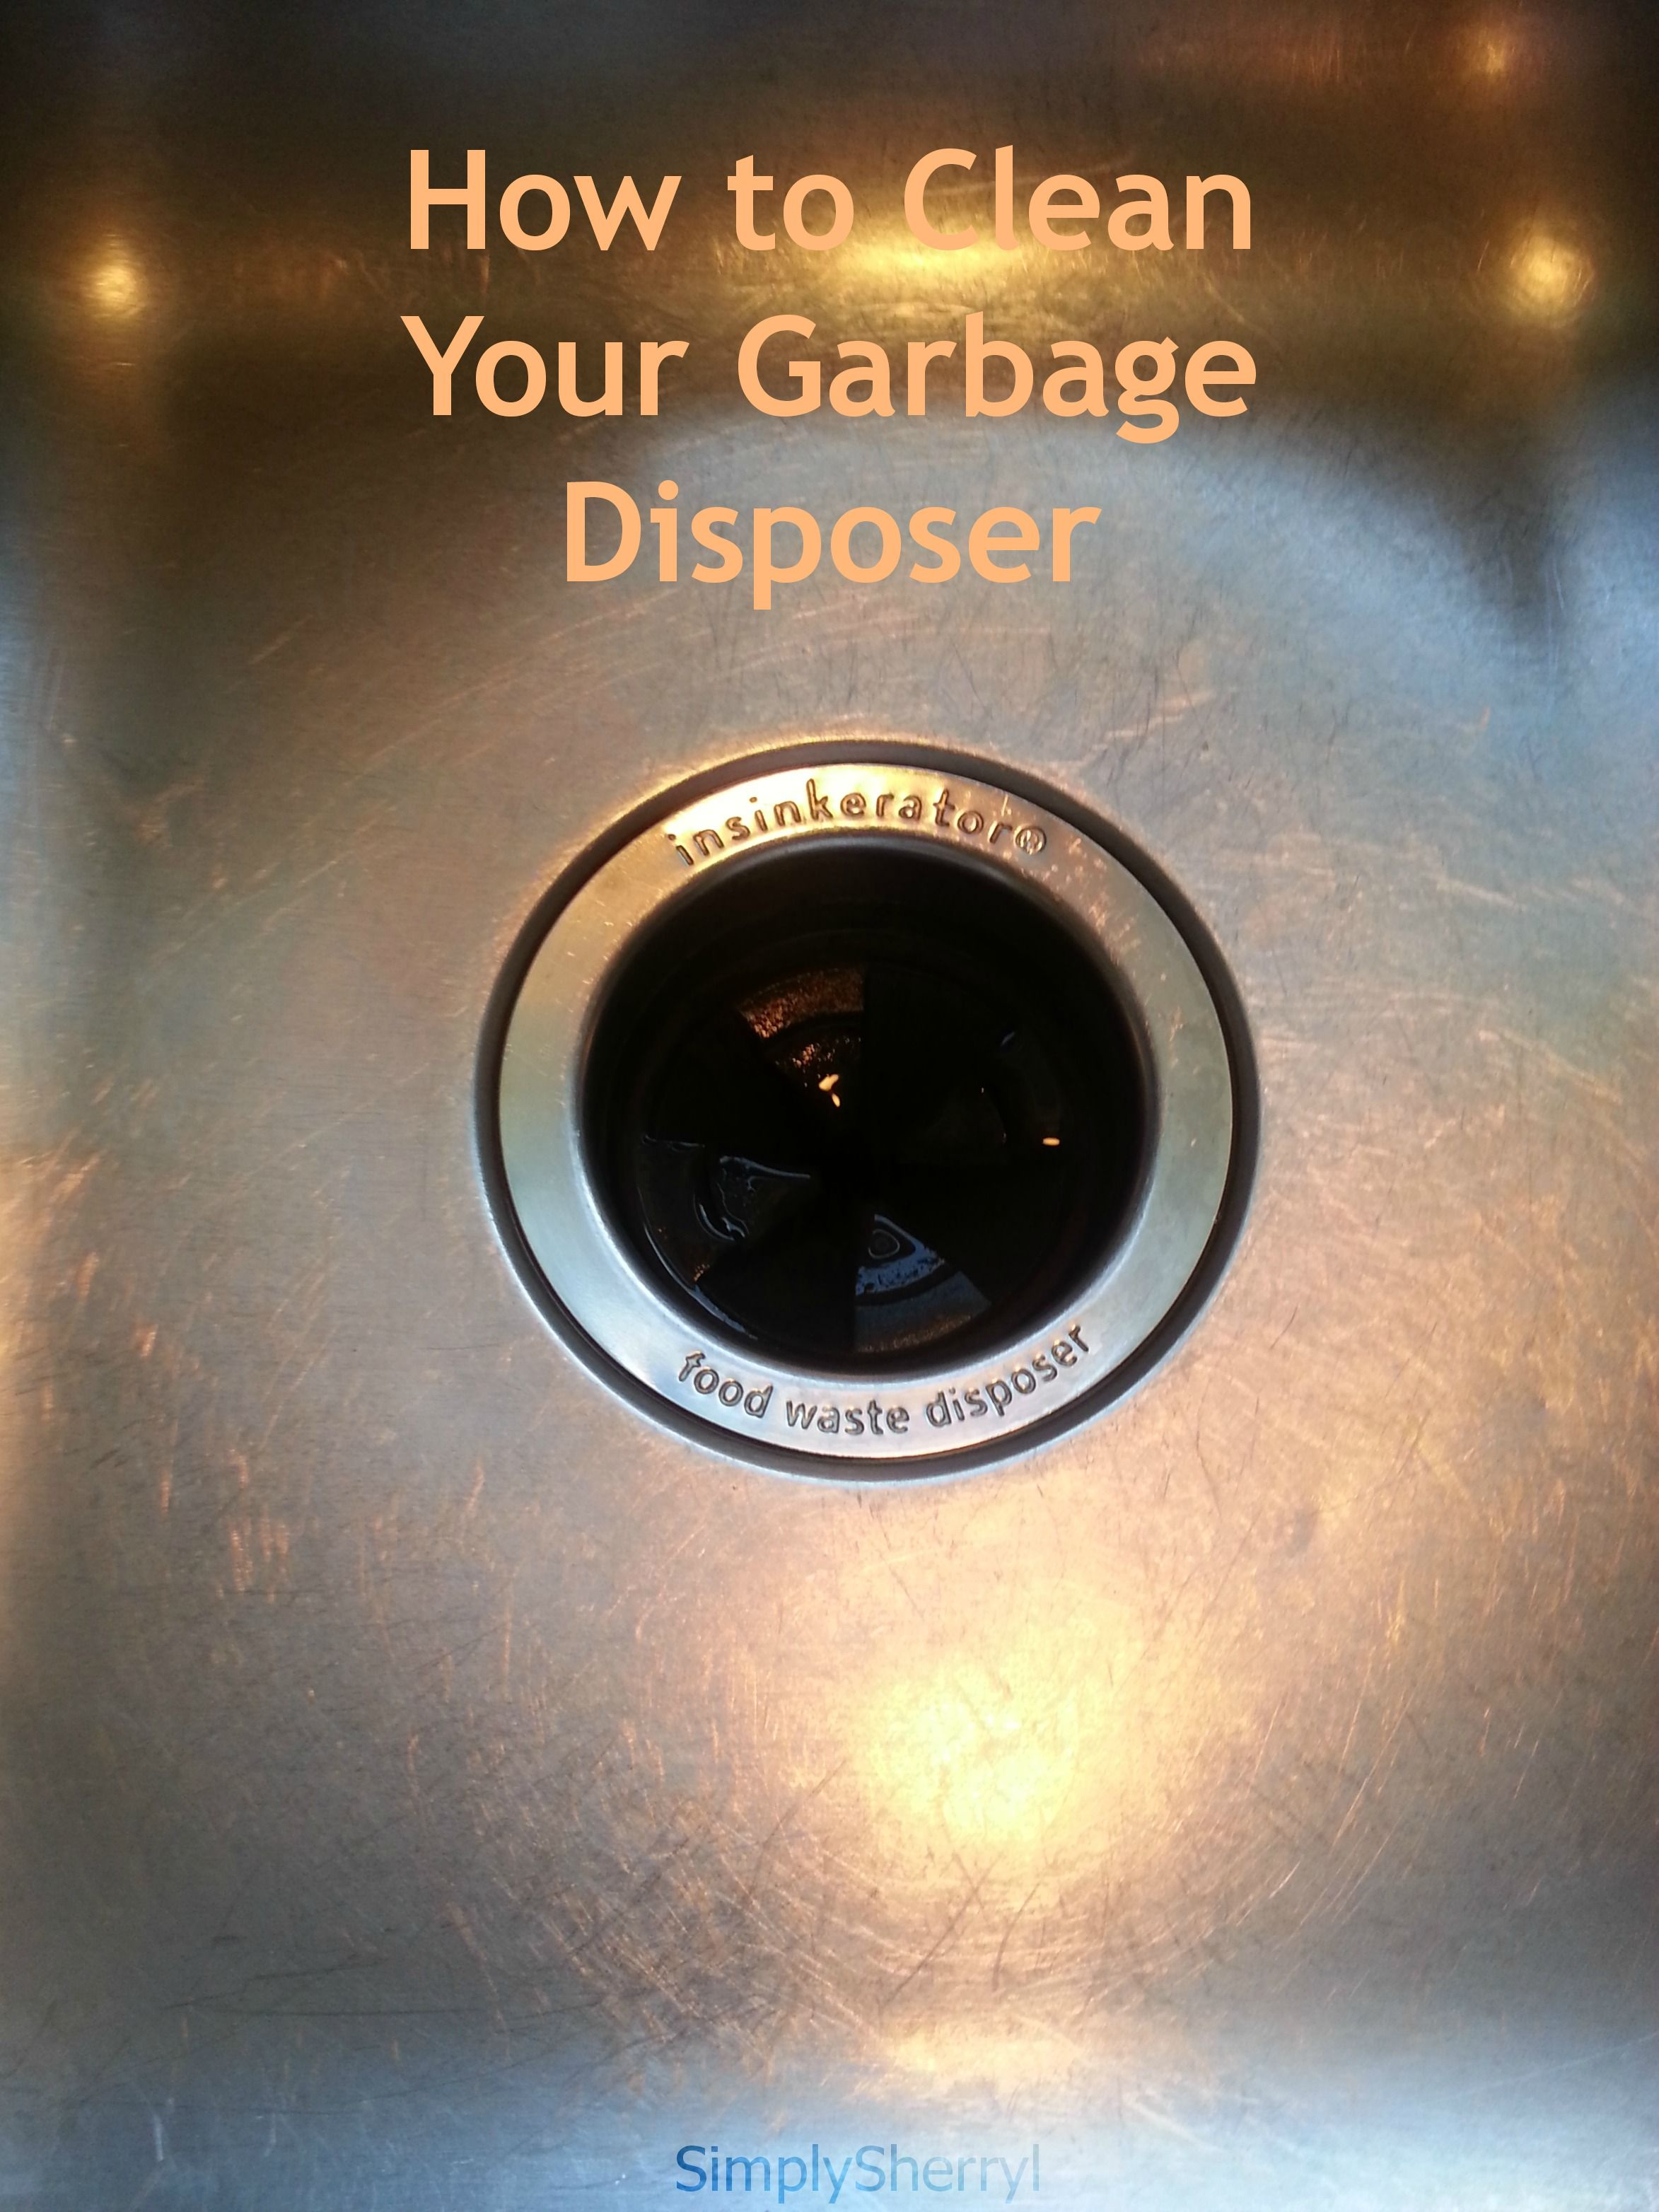 How to Clean Your Garbage Disposer | SimplySherryl by ...